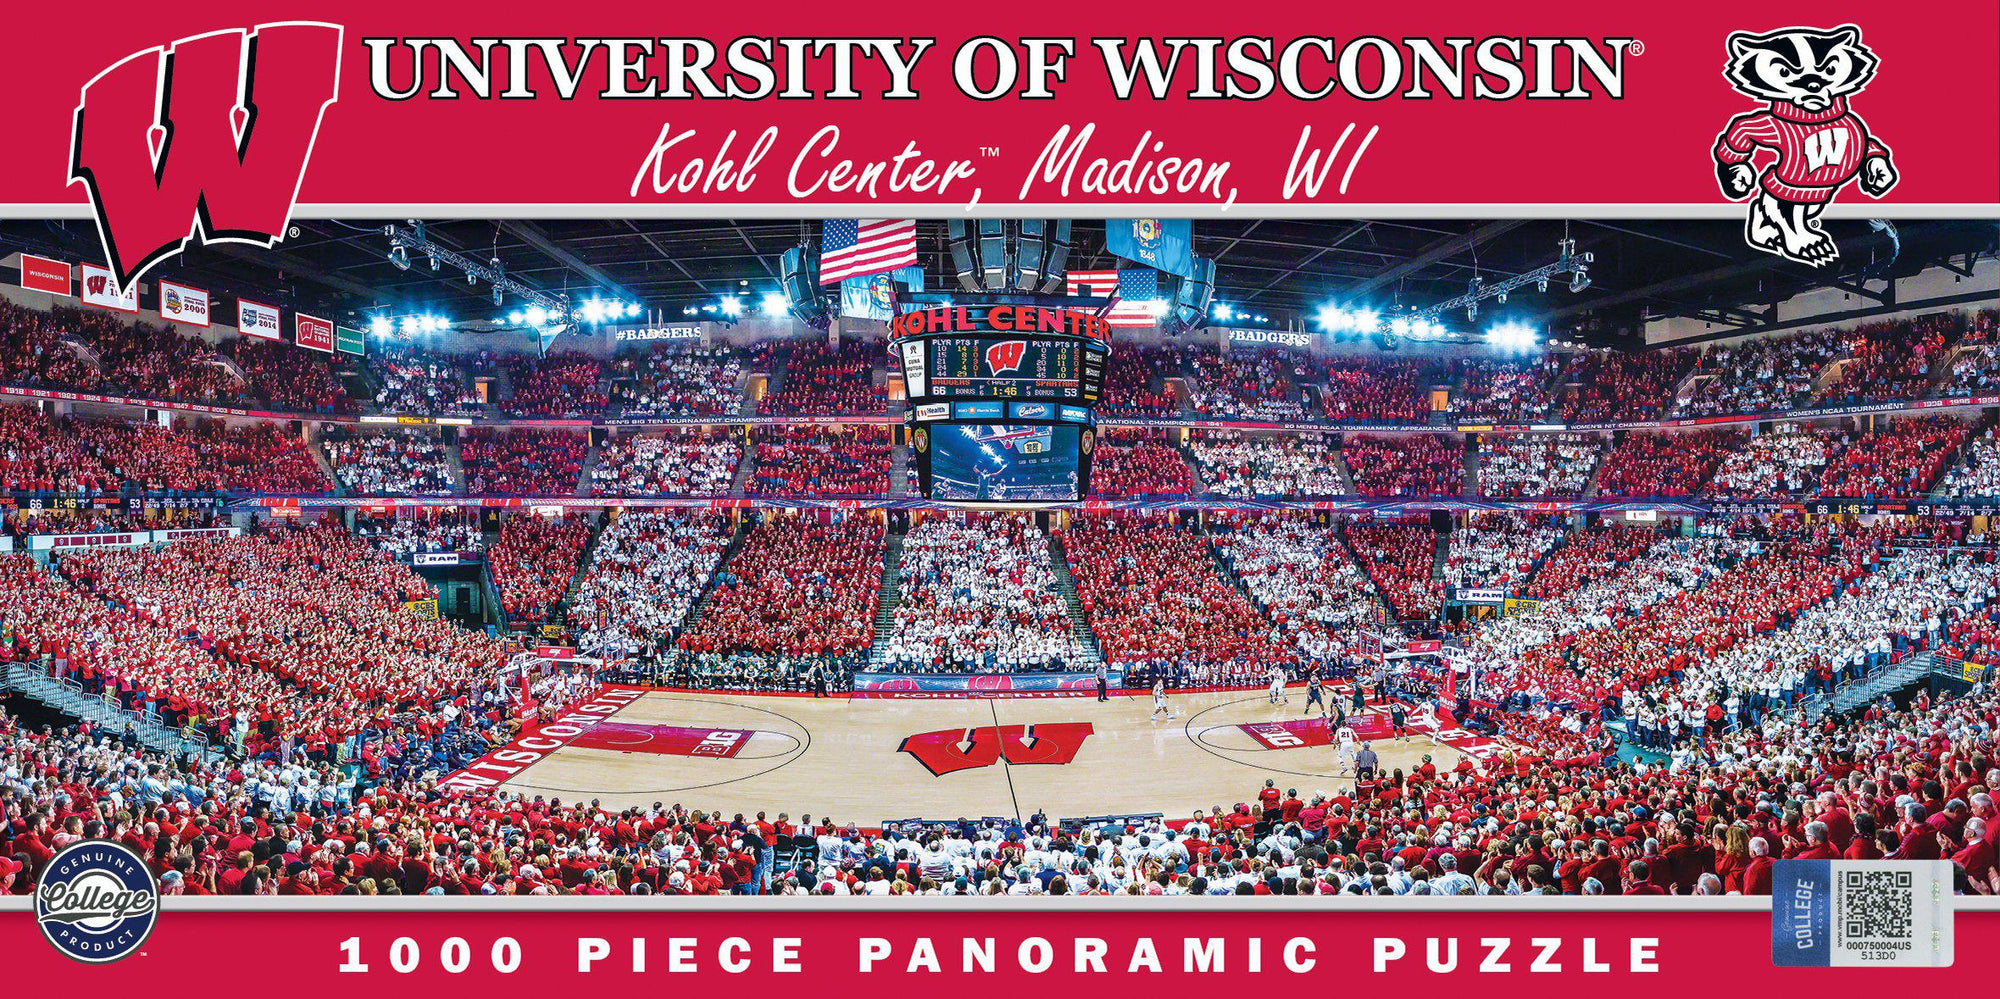 Wisconsin Badgers Basketball Arena 1000 Piece Panoramic Jigsaw Puzzle-Puzzle-MasterPieces Puzzle Company-Top Notch Gift Shop